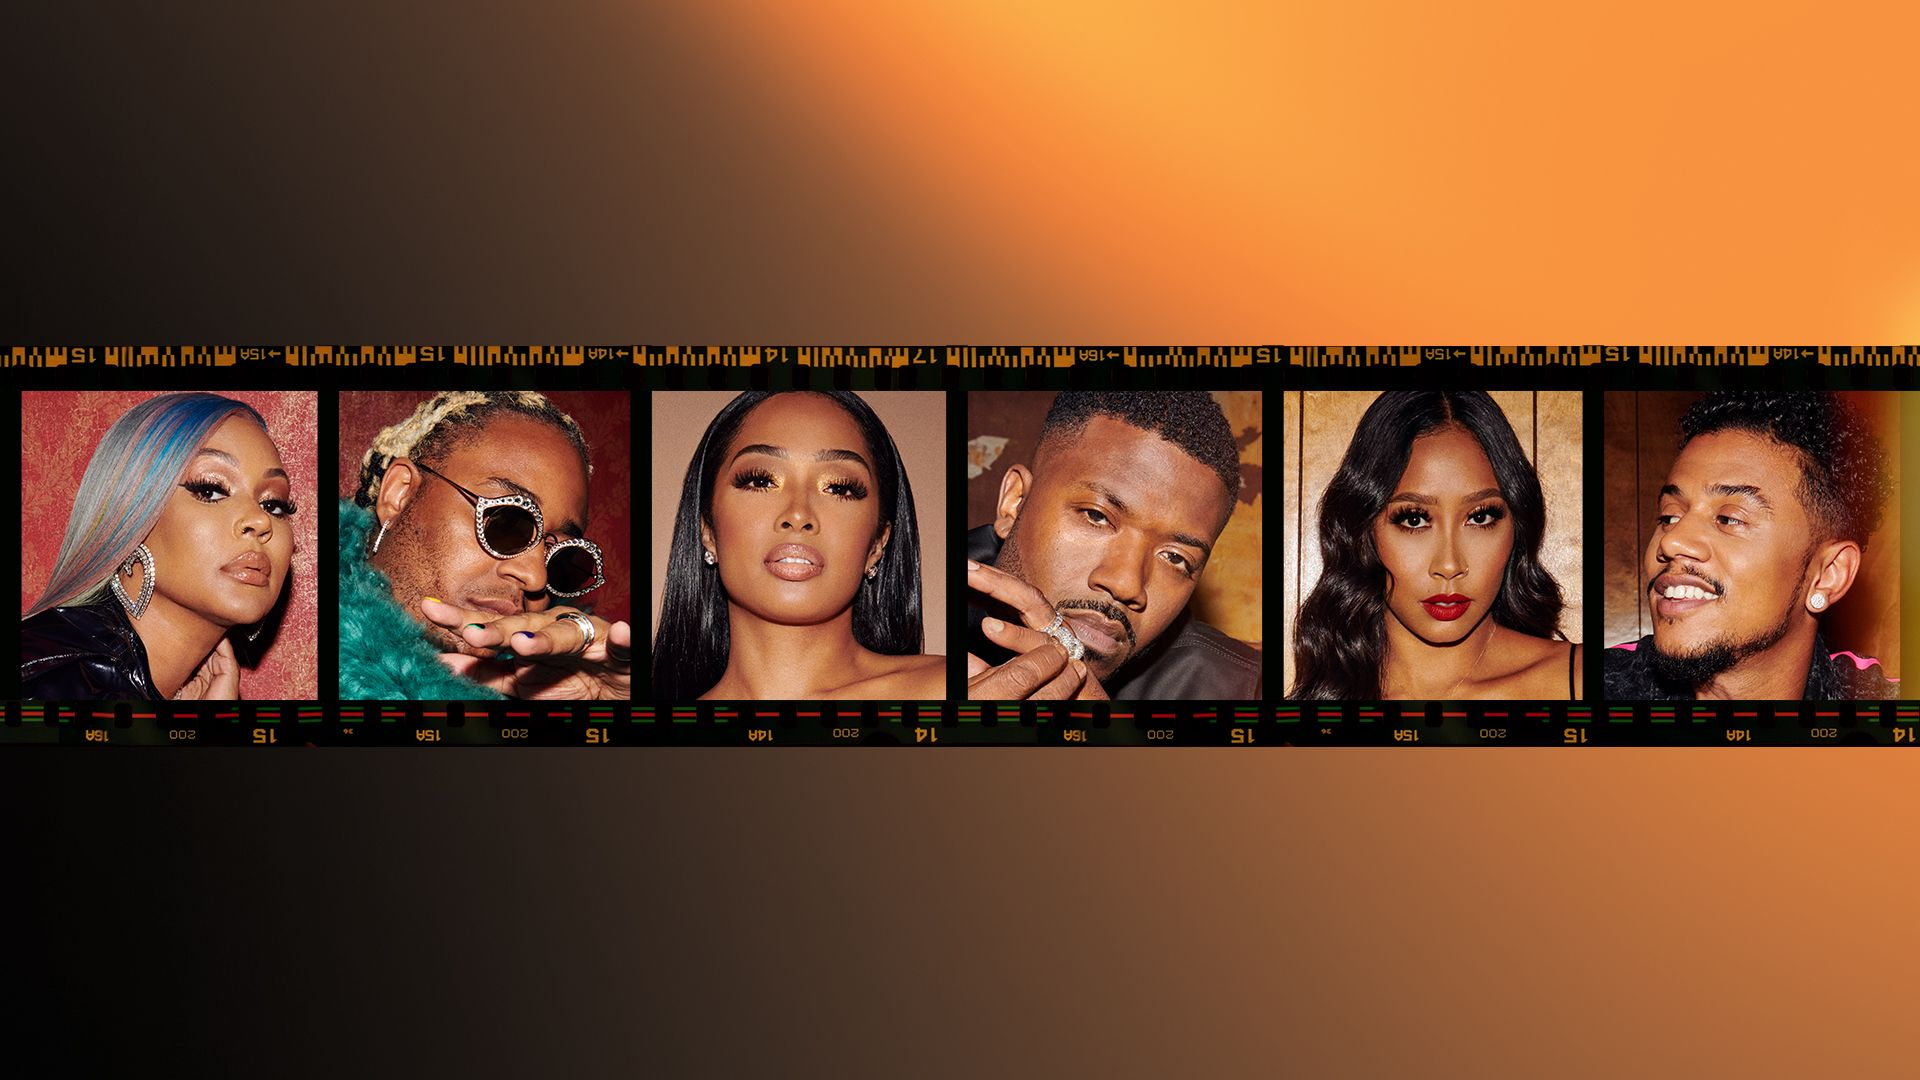 TV Schedule for Love & Hip Hop Hollywood | VH1 TV Series